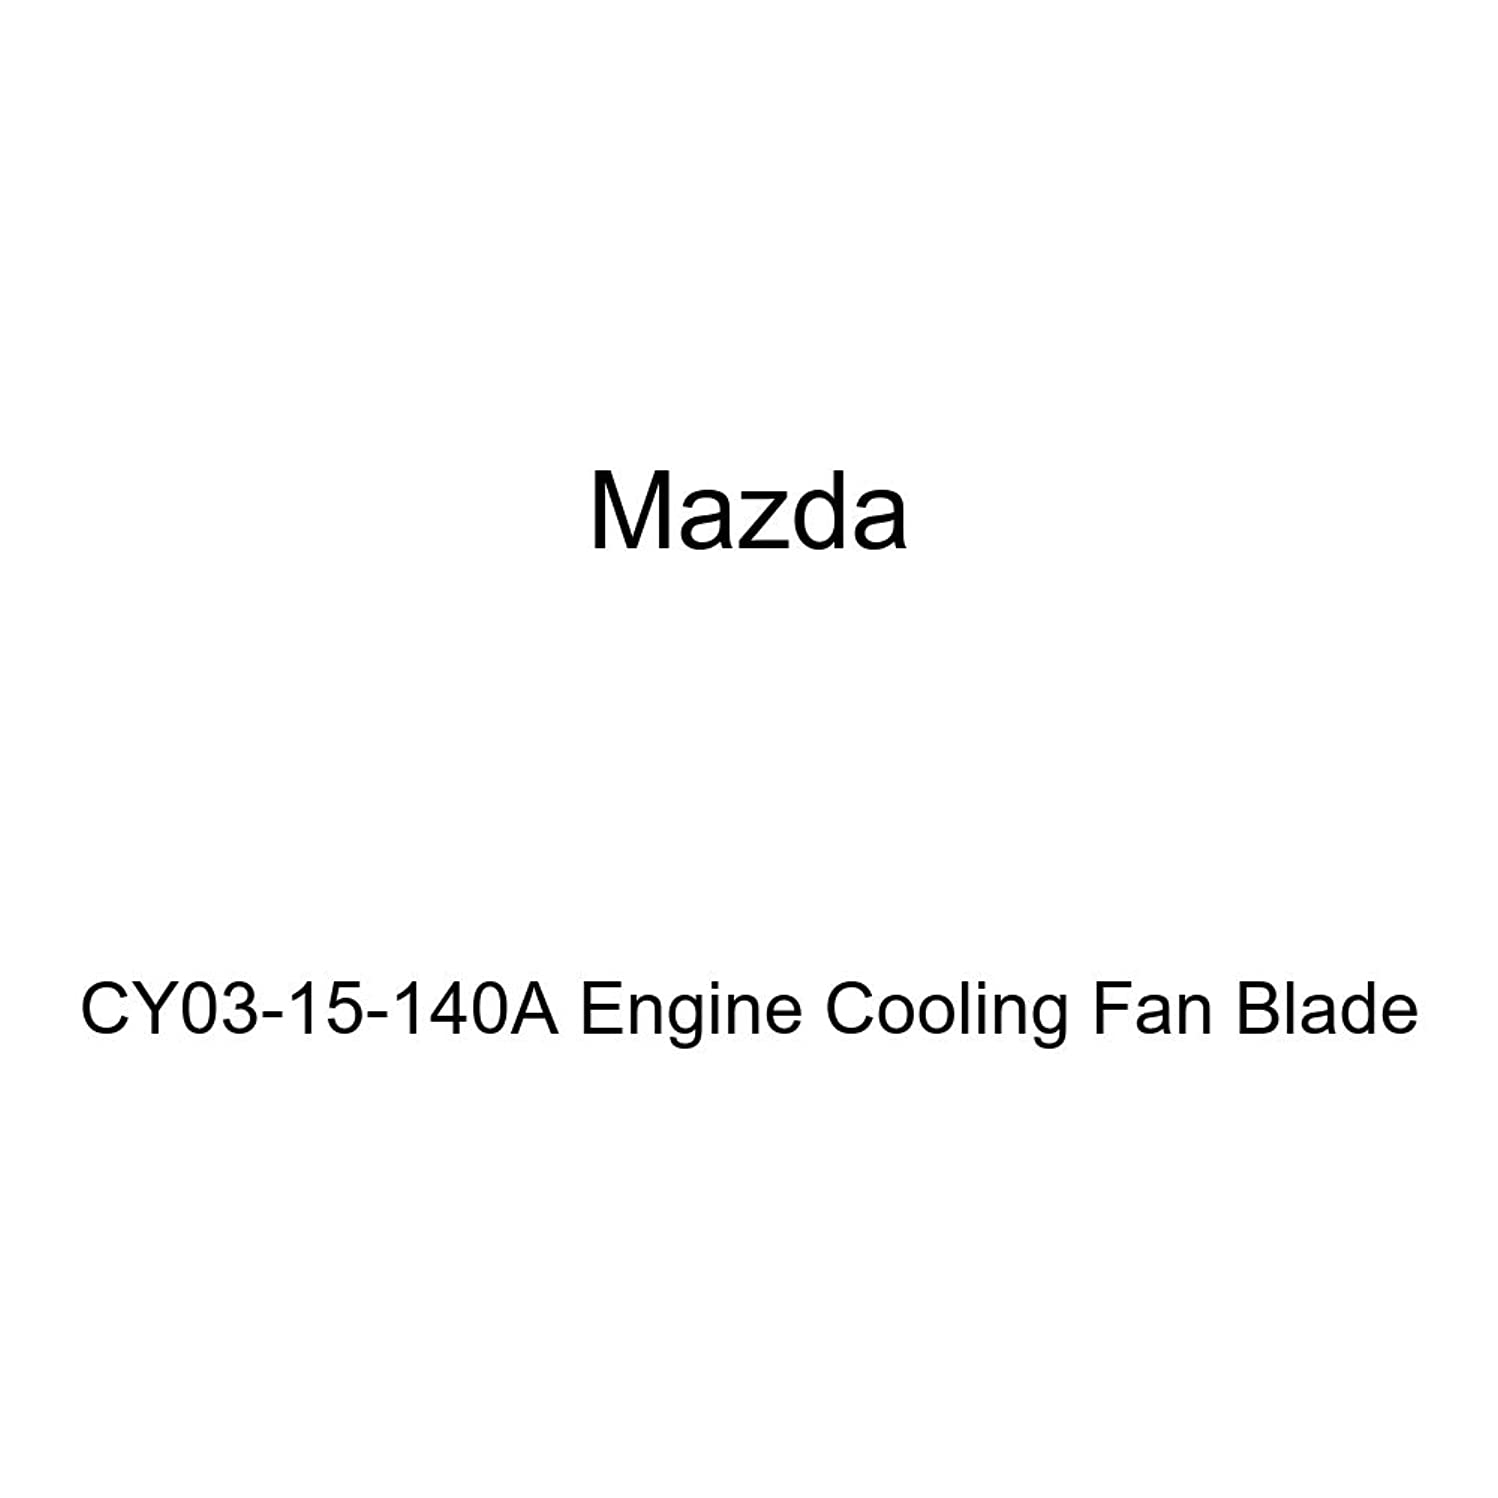 Mazda CY03-15-140A Engine Cooling Fan Blade